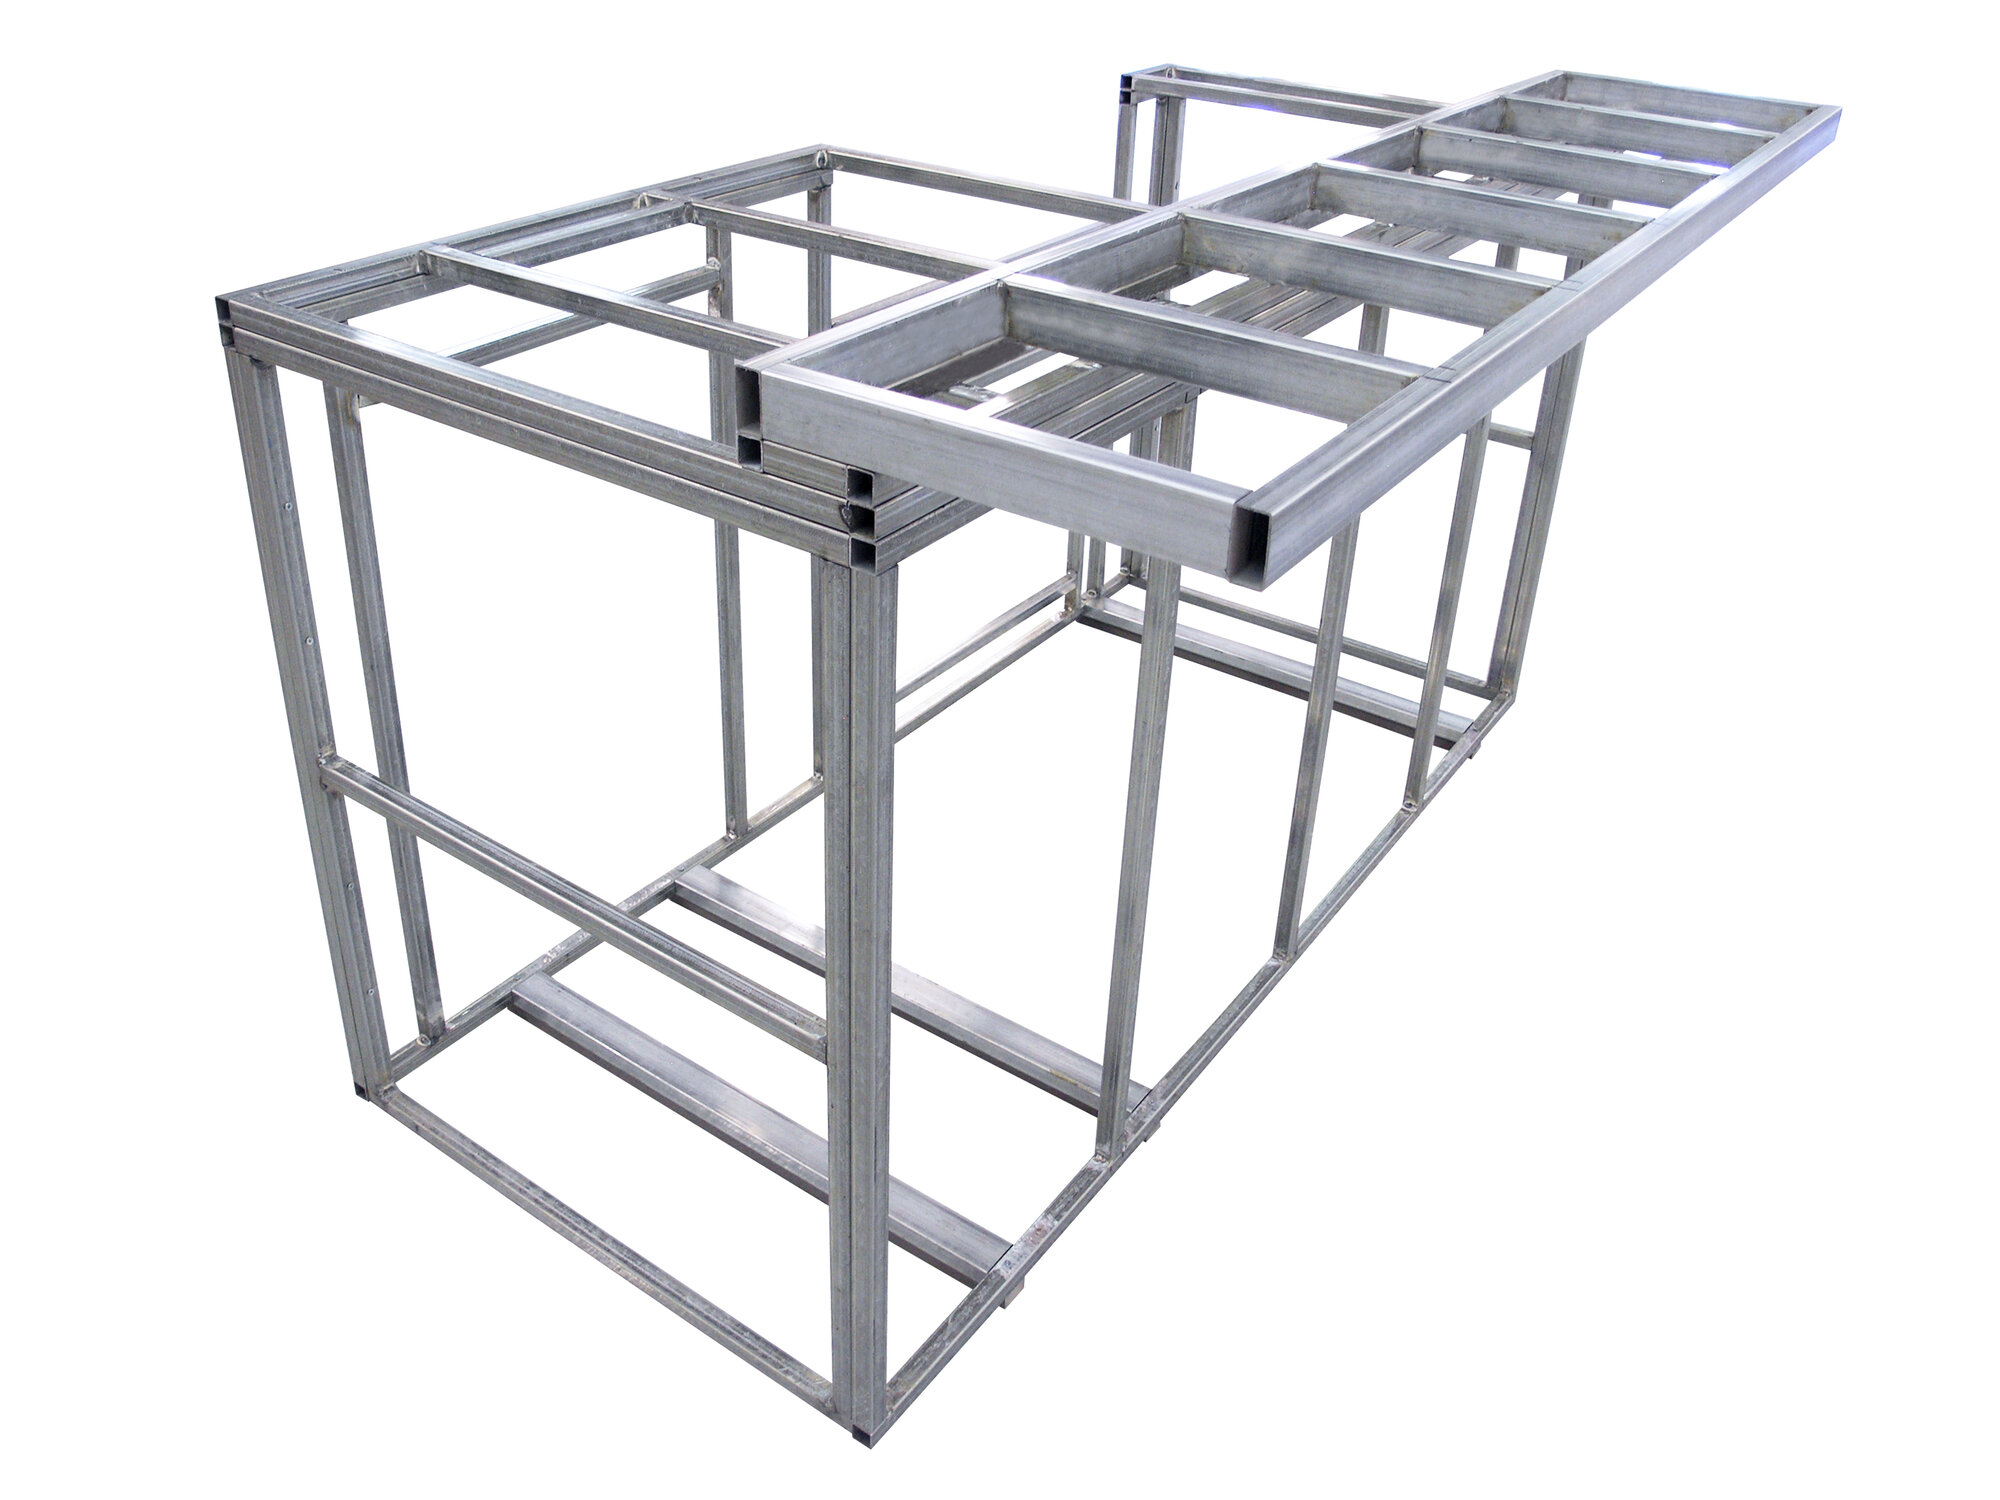 Calflame outdoor kitchen island with bartop frame kit ebay for Outdoor kitchen island kits